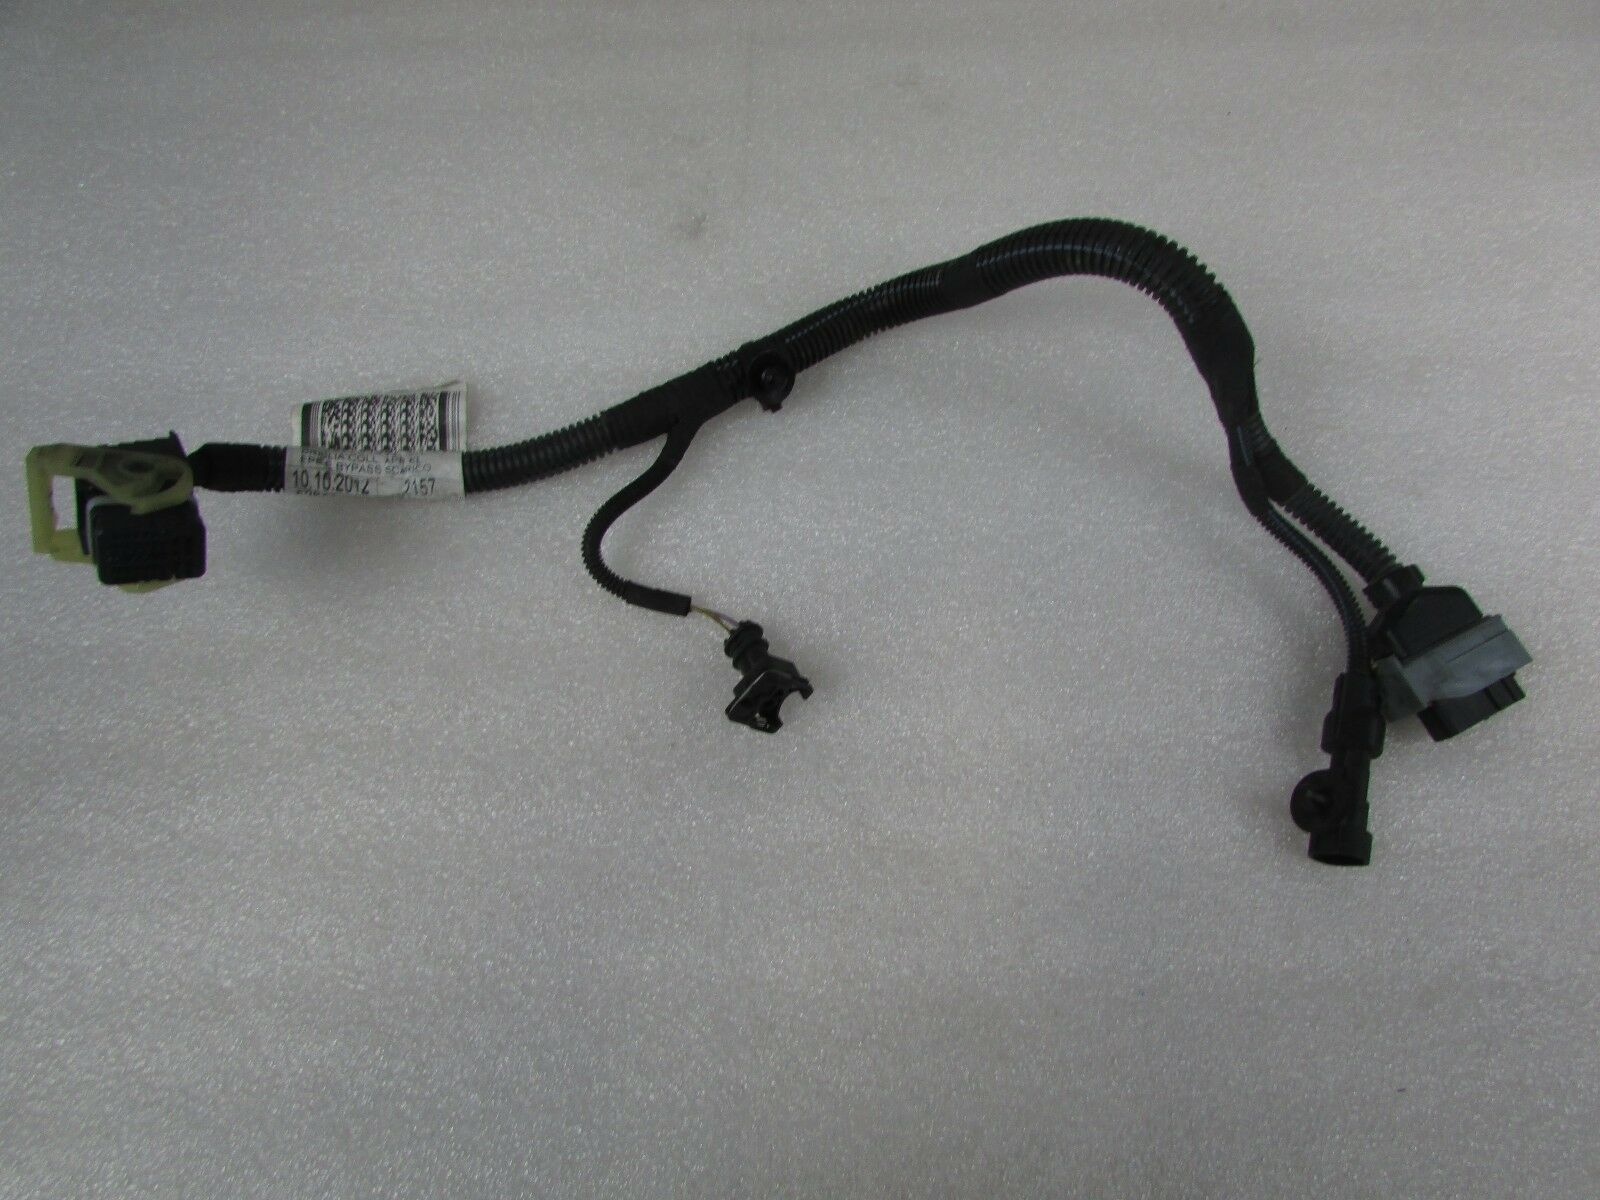 hight resolution of maserati ghibli parking brake wiring harness used p n 670007516 exotic auto recycling